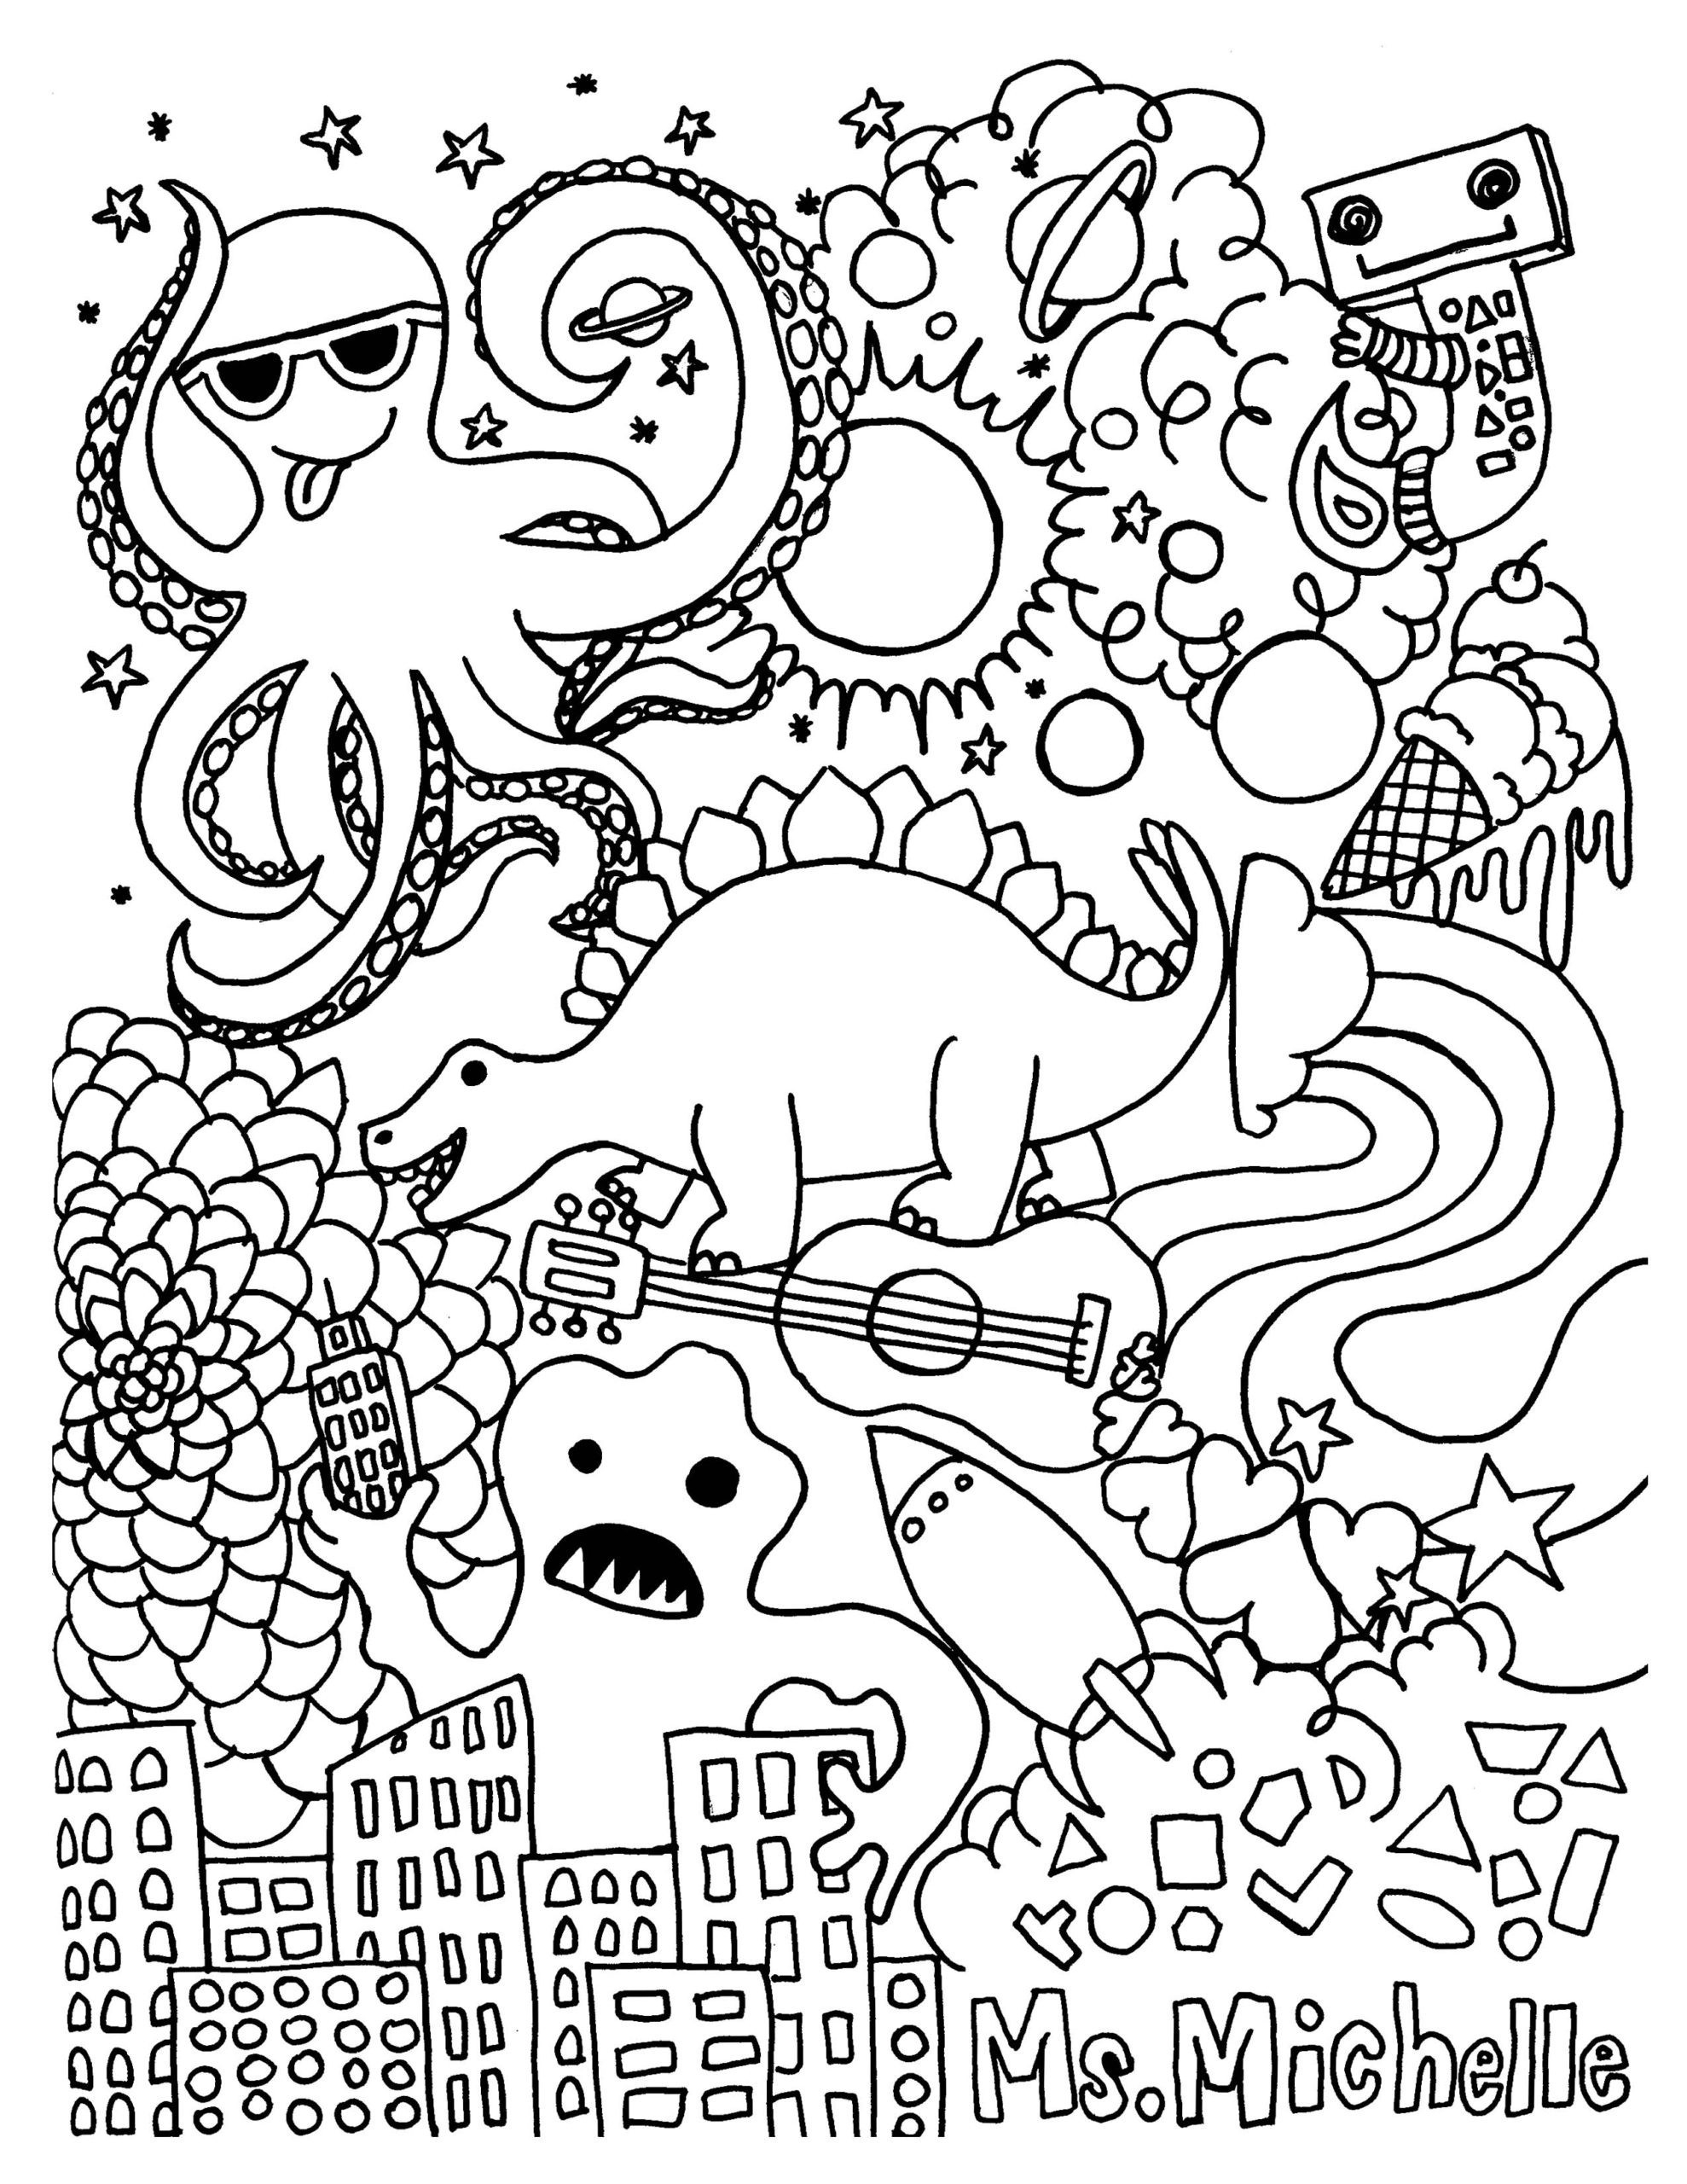 Coloring Pages for 3rd Graders Coloring Pages Free Printable Activity Pages for Kids